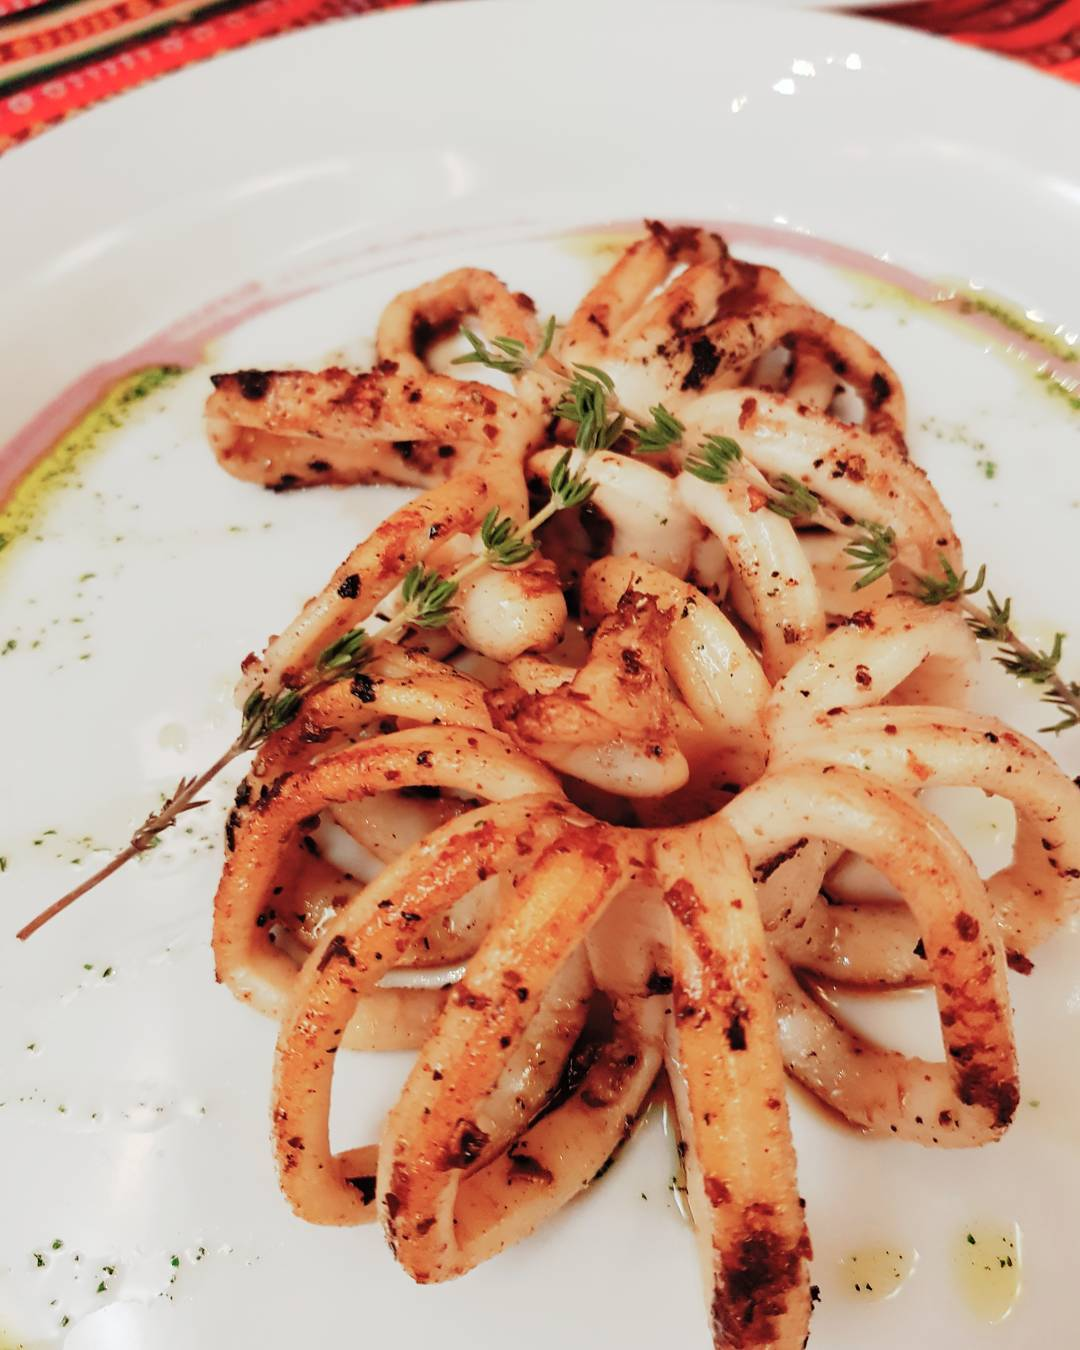 Grilled Calamari of Nazca 21 Restaurant in Casco Viejo Panama